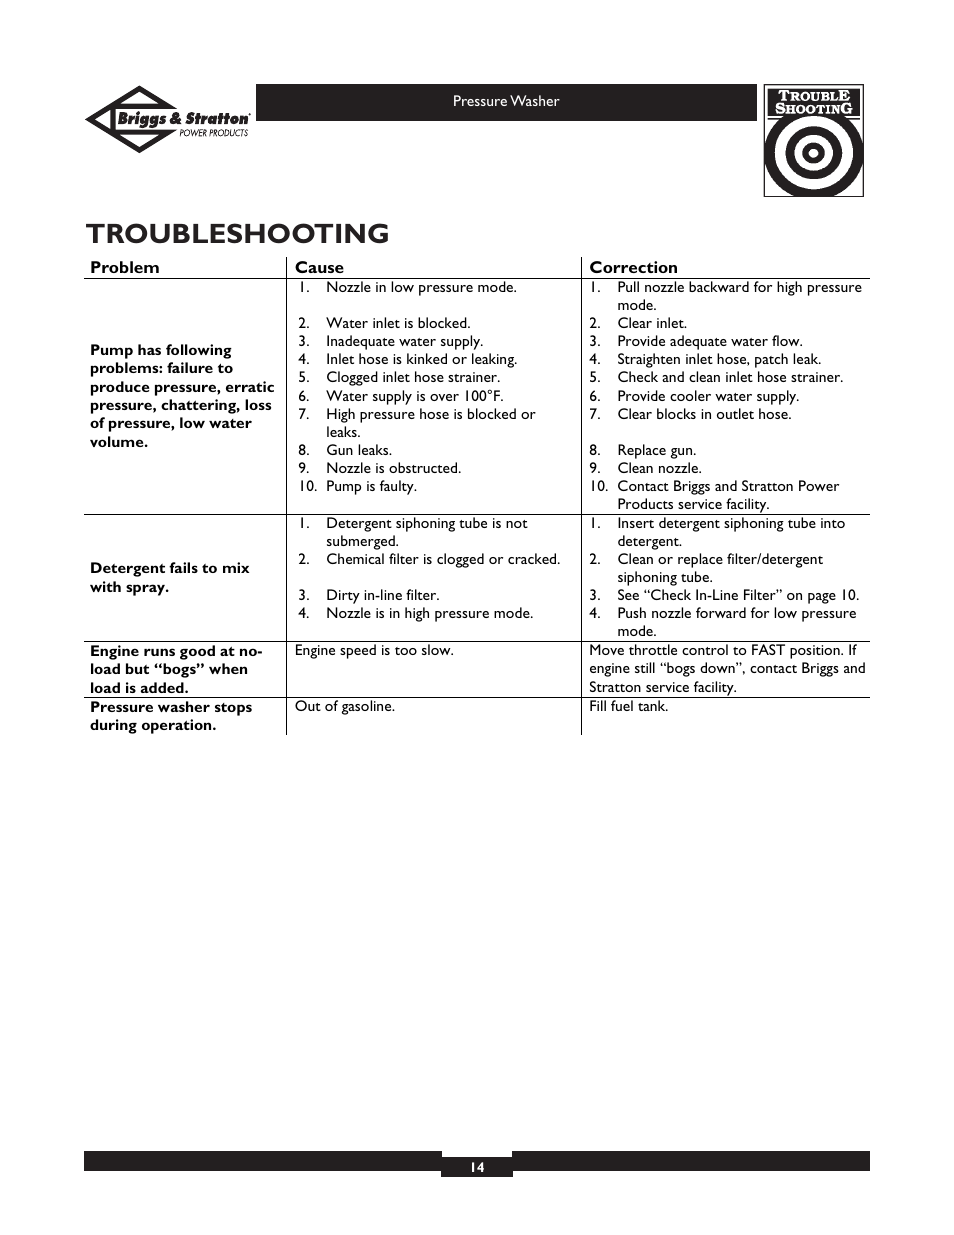 Troubleshooting | Briggs & Stratton Elite Series 01804 User Manual